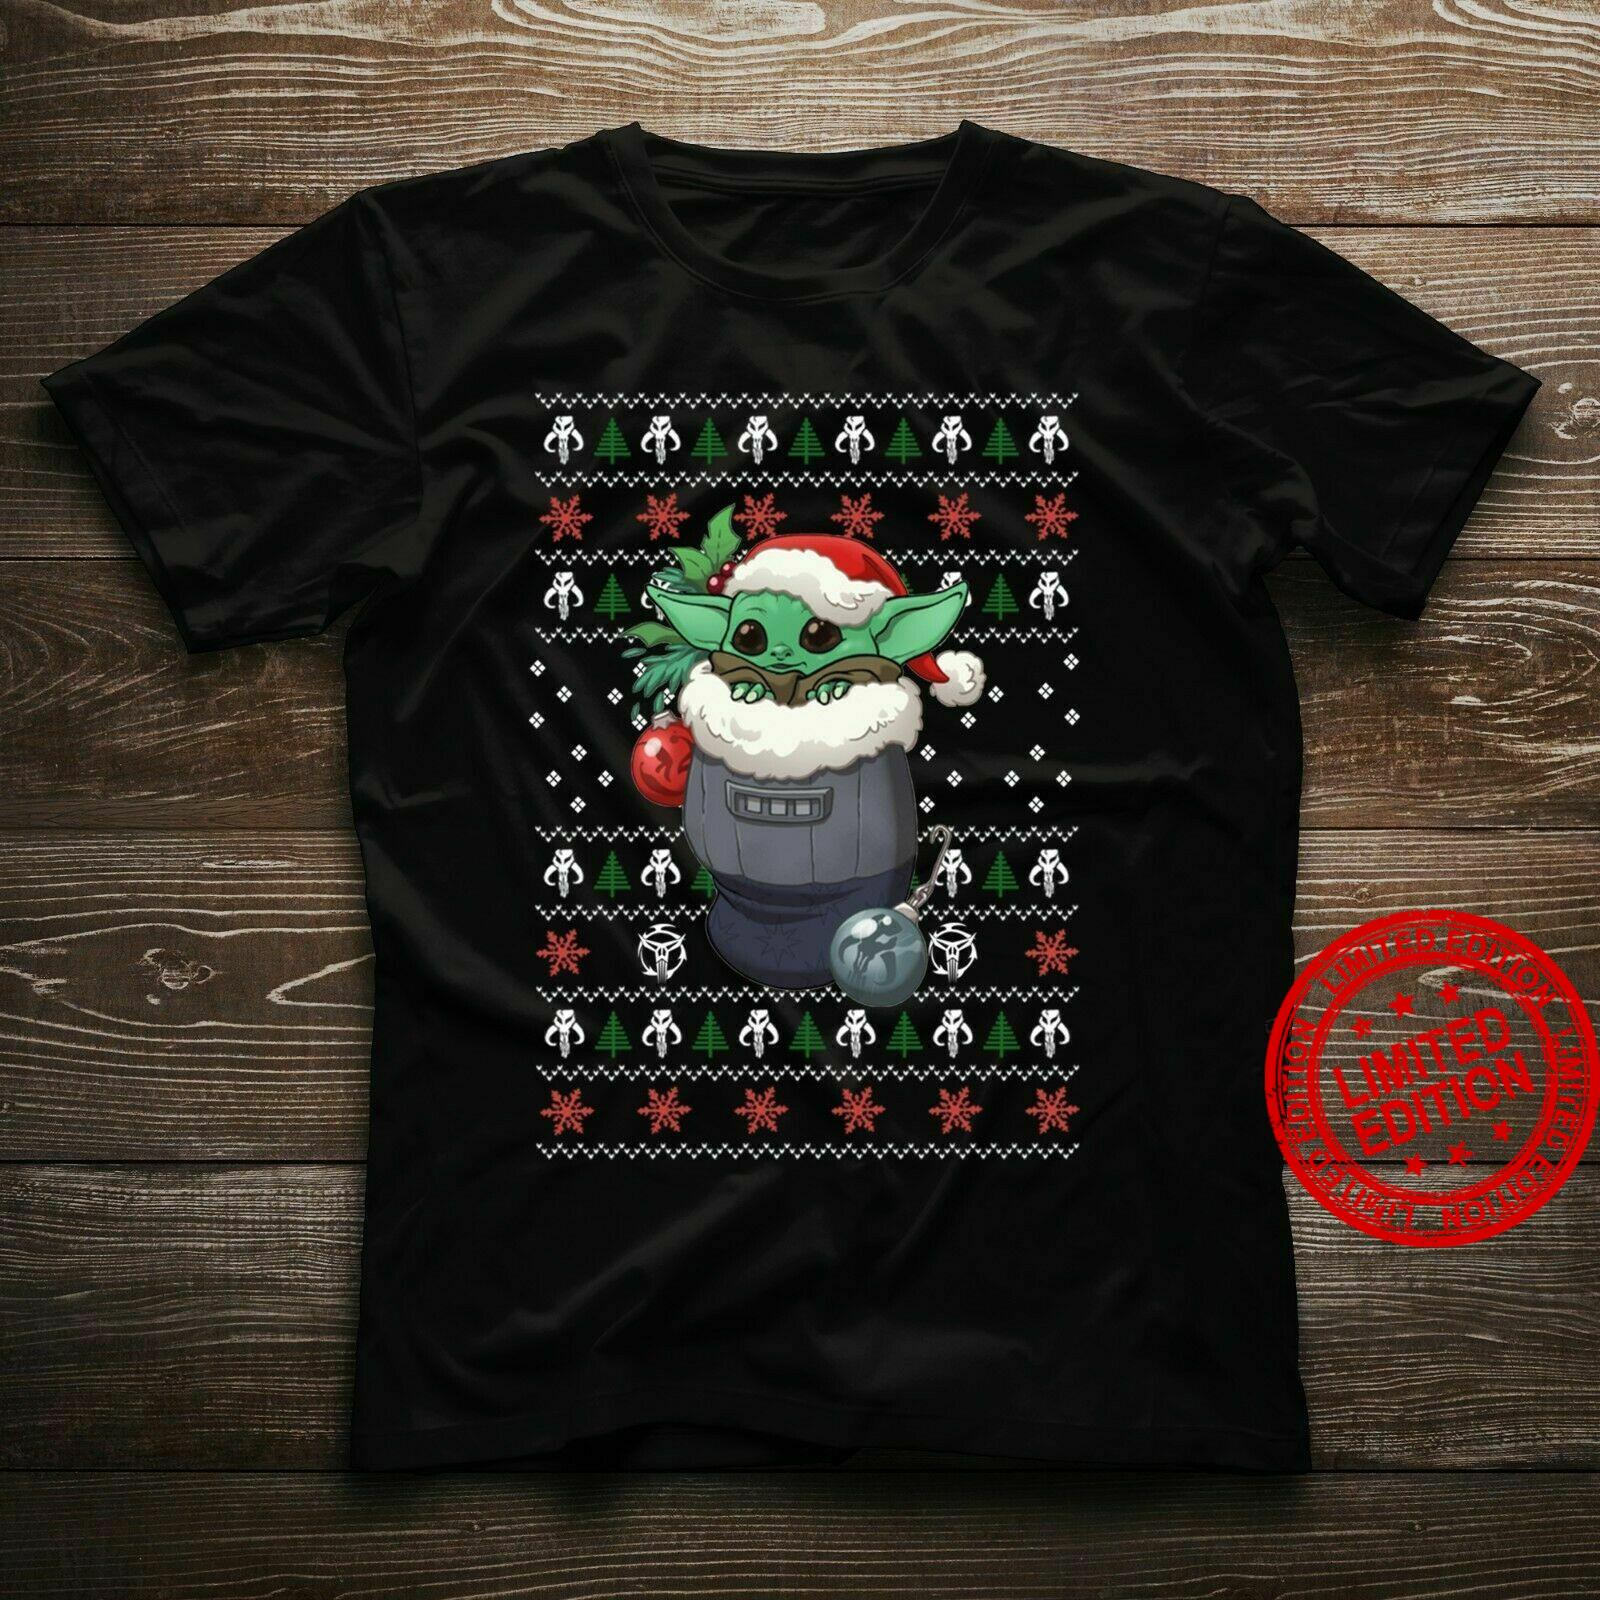 Santa Baby Yoda Merry Christmas Shirt